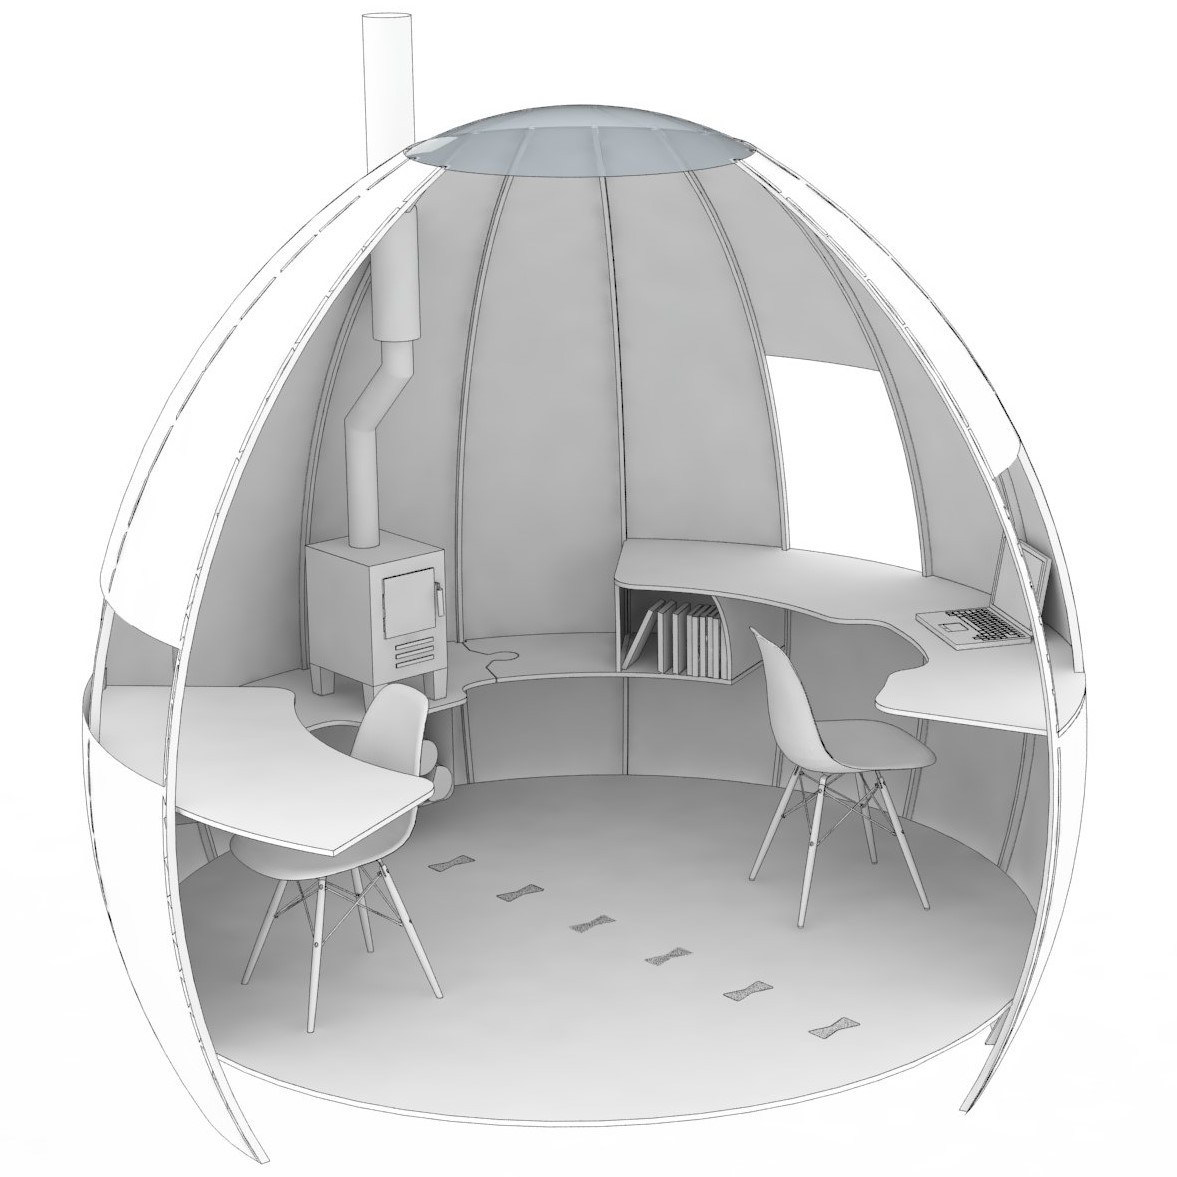 The Escape Pod by Podmakers